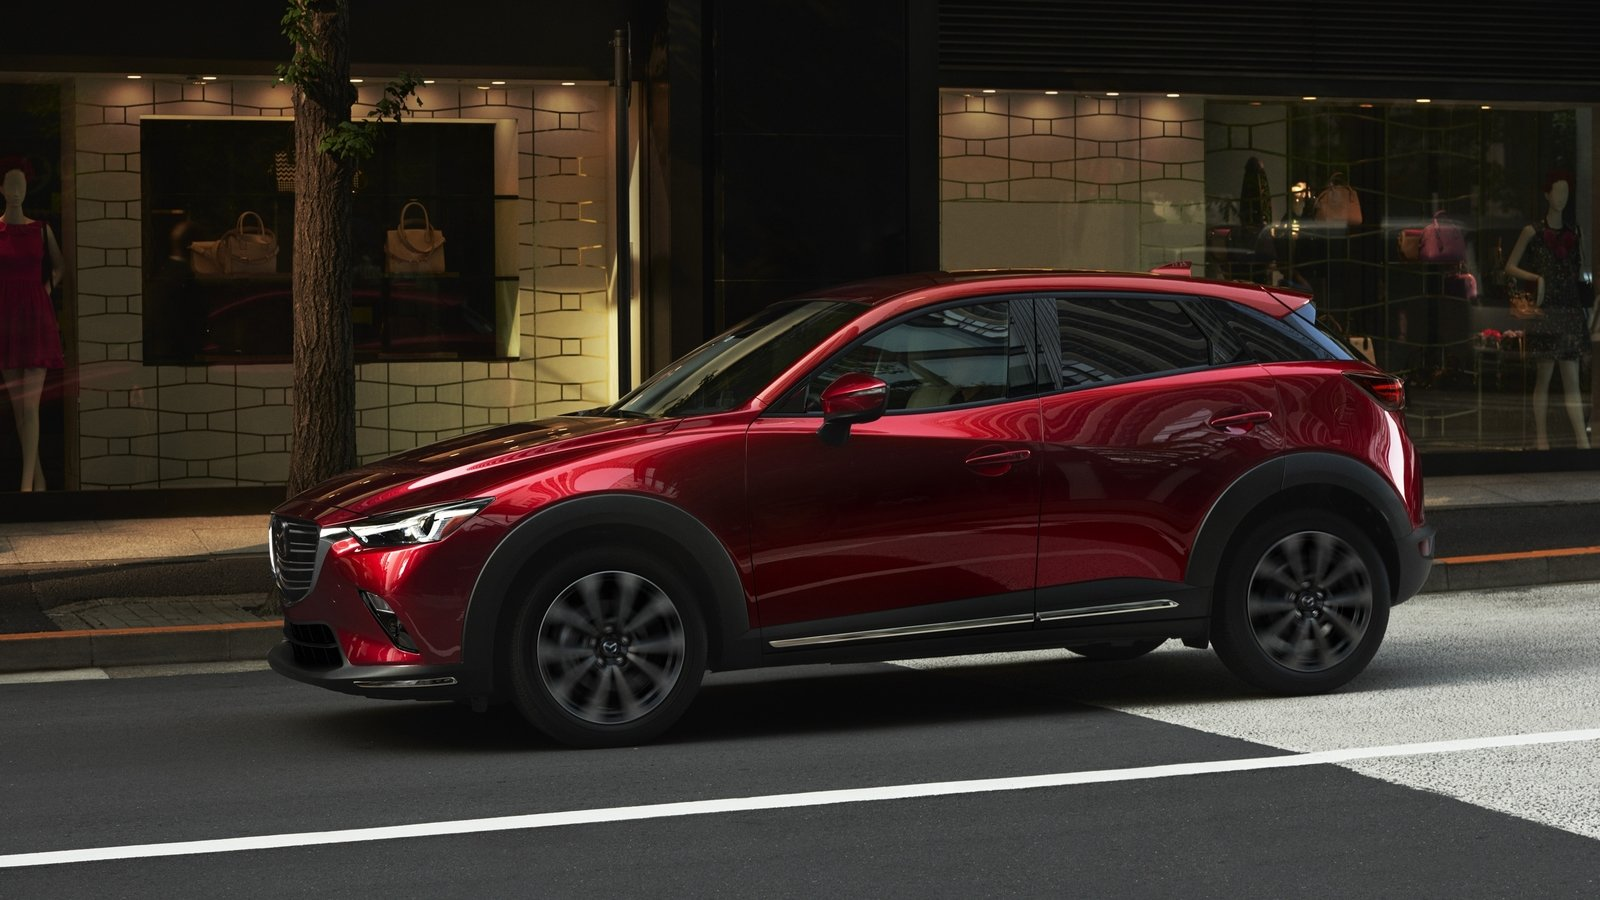 Top Fastest Cars >> 2019 Mazda CX-3 | Top Speed